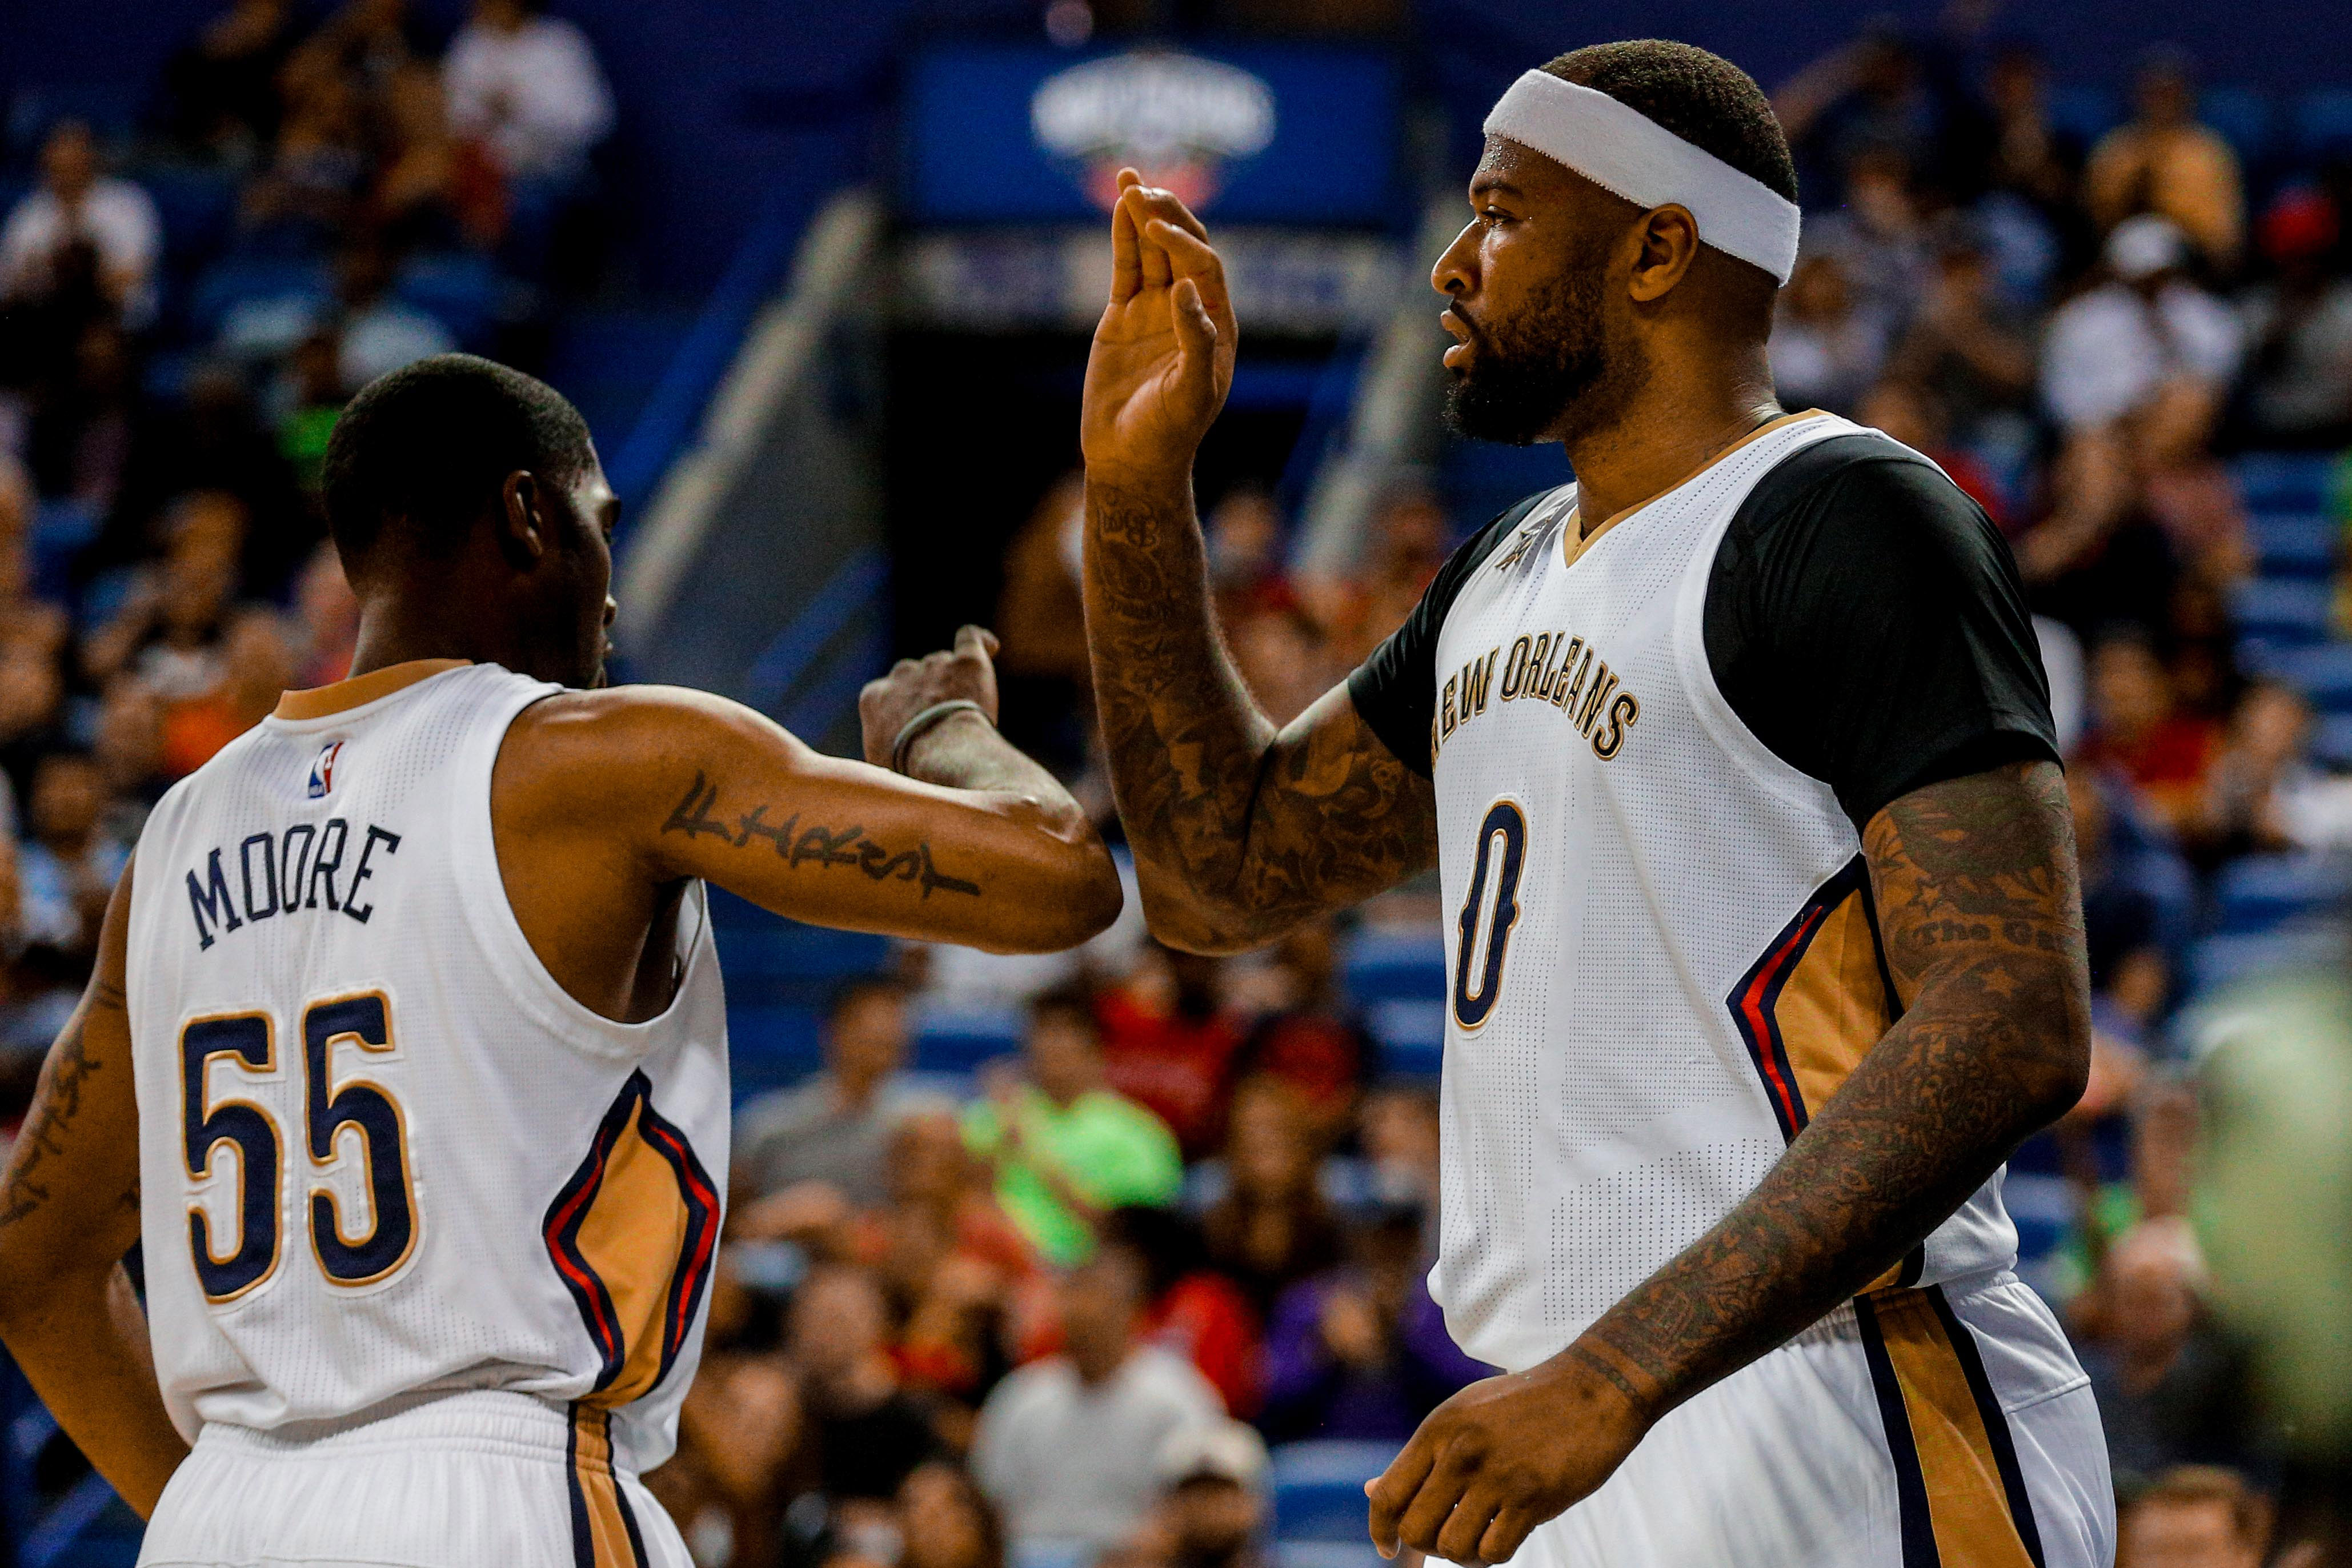 9983581-nba-sacramento-kings-at-new-orleans-pelicans